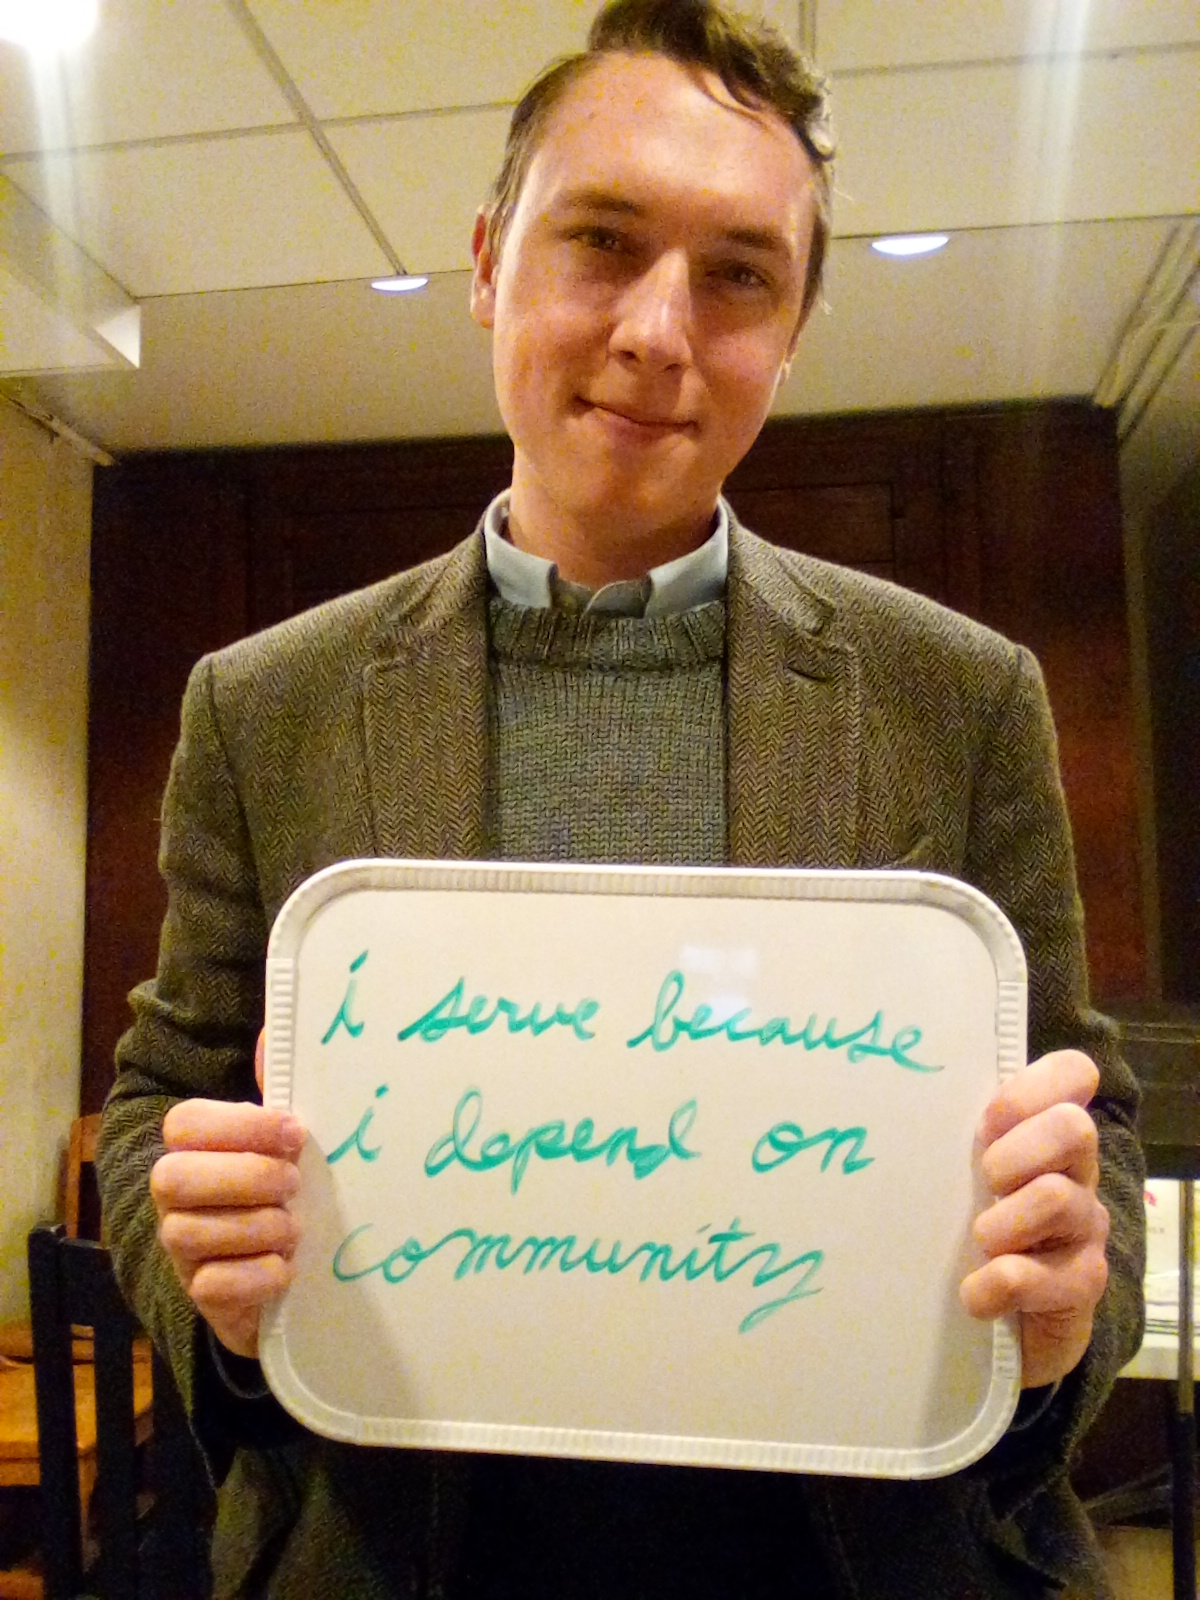 """""""I serve because I depend on community"""" - Paddy Cavanaugh, Micah Fellow at The Crossing & Cambridge Intentional Community"""